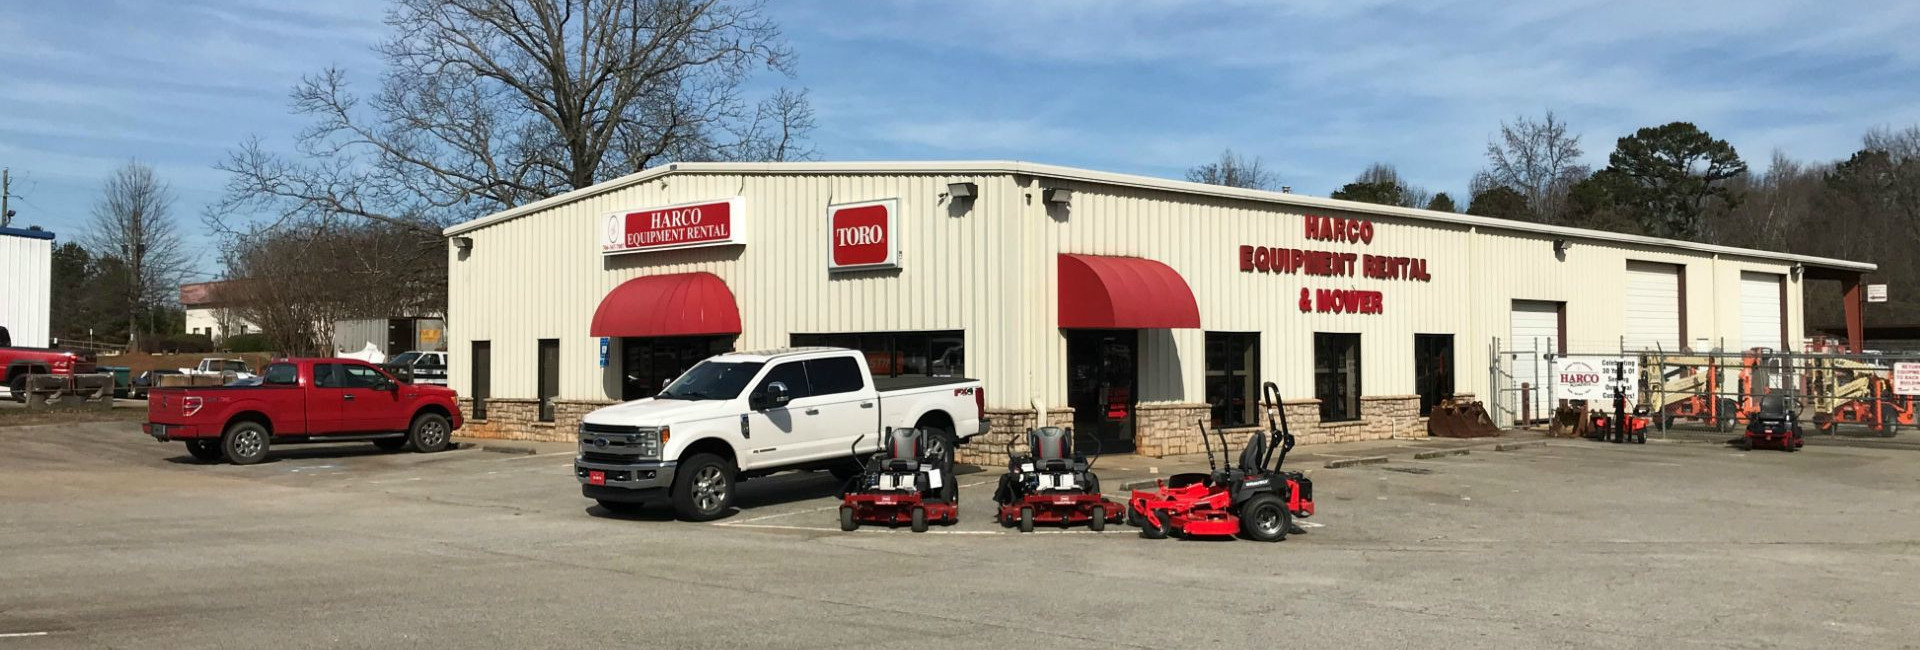 Construction Tool Rentals in Northeast Georgia